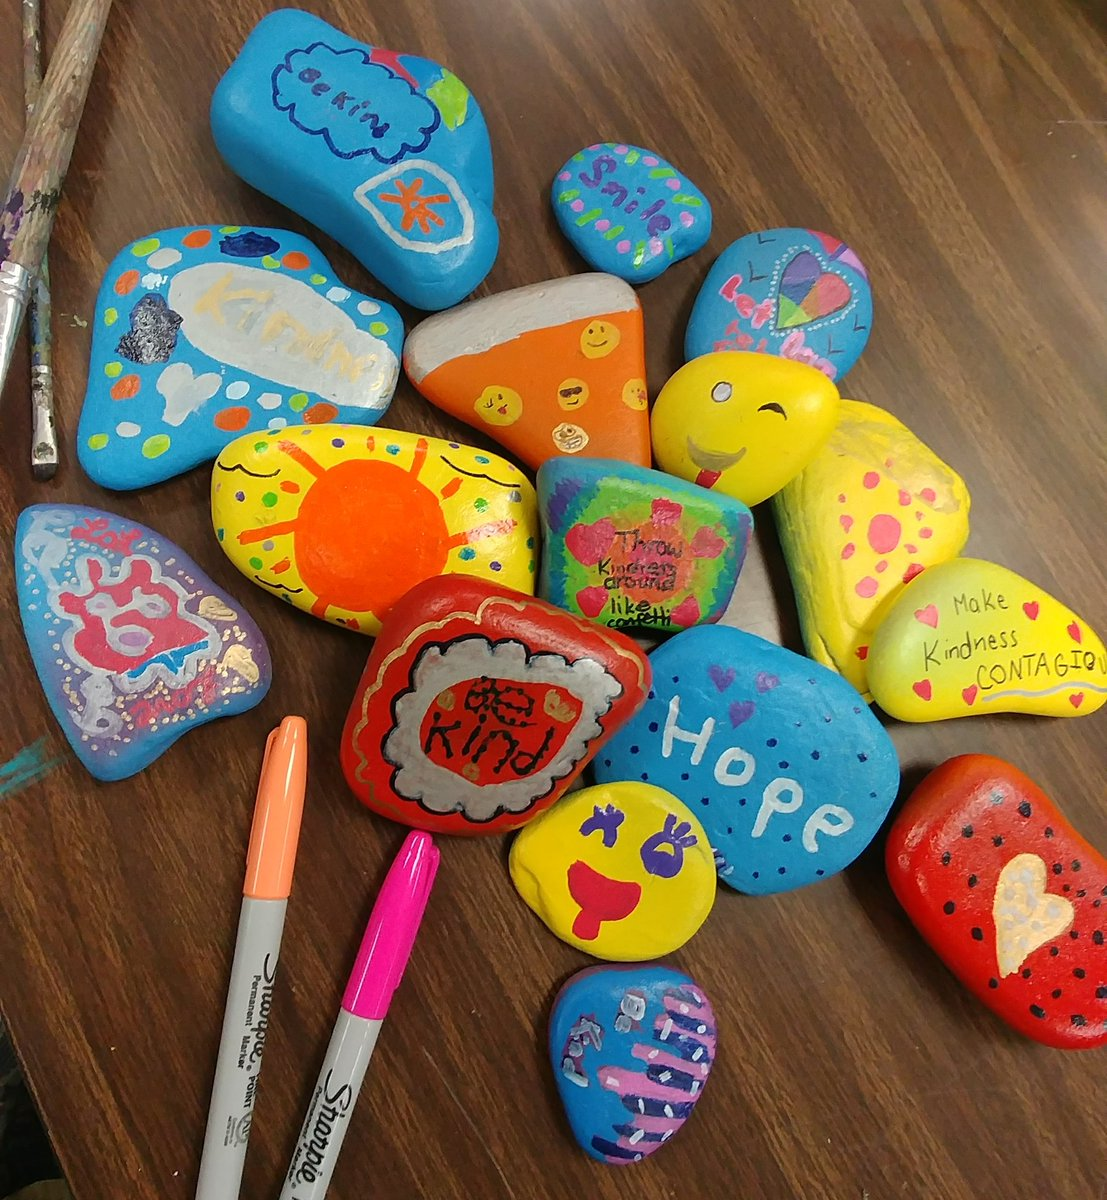 5th Grade Northwood ROCKS lookin&#39; good, and a li&#39;l 1st grade free-drawin&#39; fun. #pizzarocks #sharks <br>http://pic.twitter.com/z9WHv1I04Y